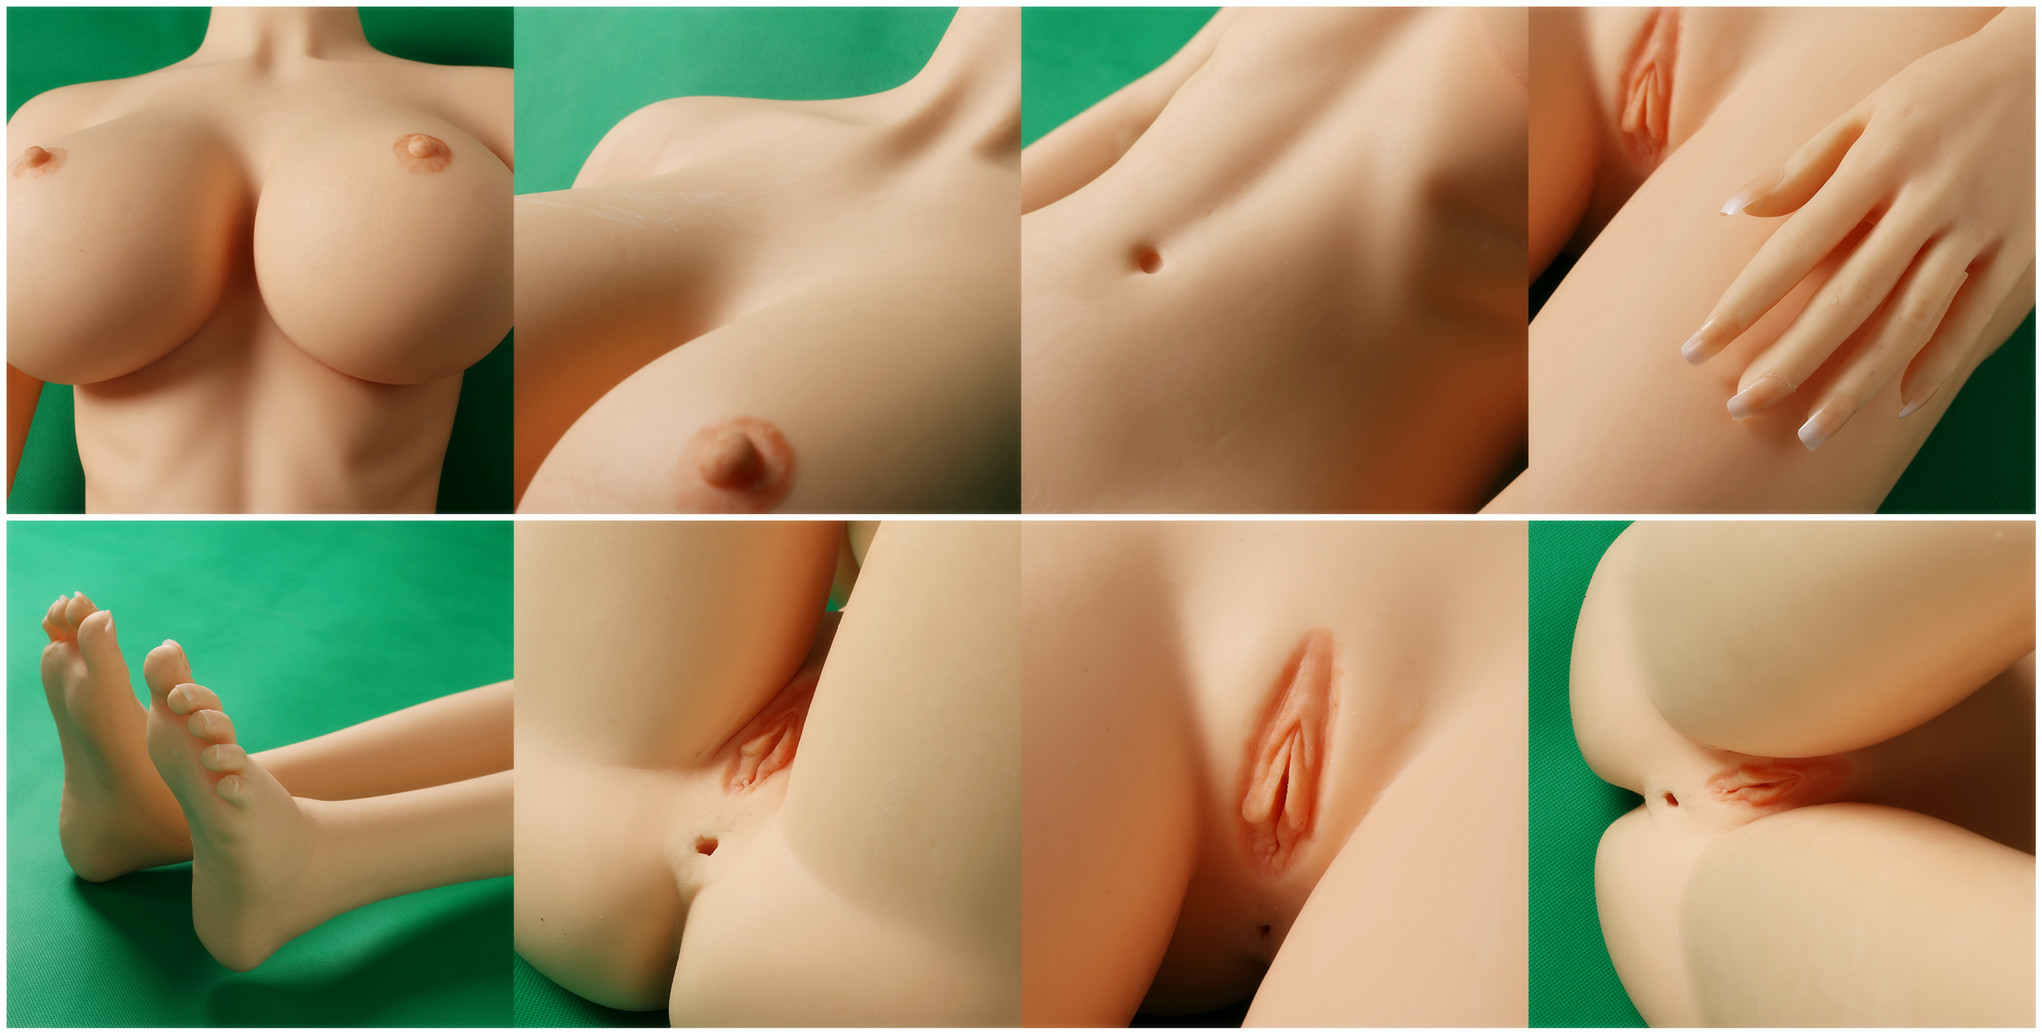 detail of sex doll